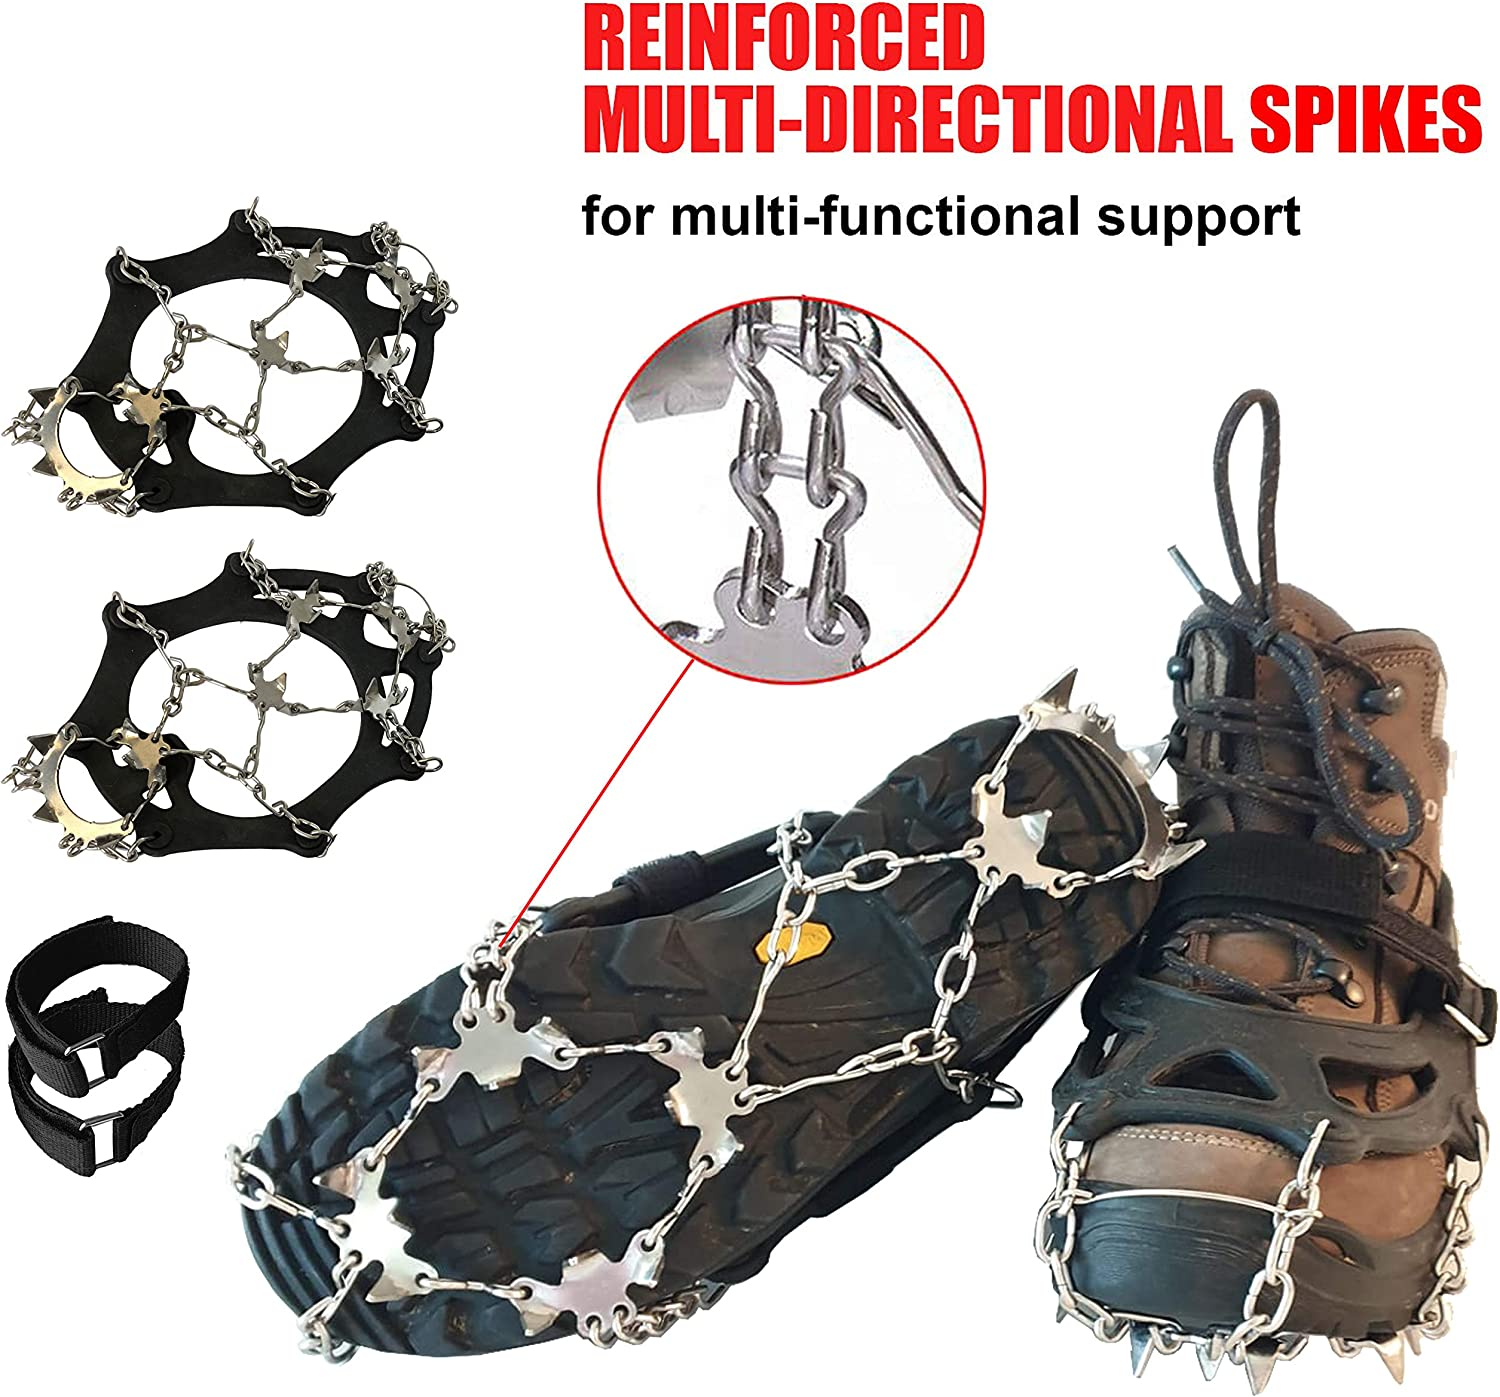 Limm Crampons Ice Traction Cleats - Shoe Grips on Bottom of Shoes Quickly & Easily Over Footwear for Snow and Ice - Portable Microspikes and Ice Cleats for Shoes and Boots